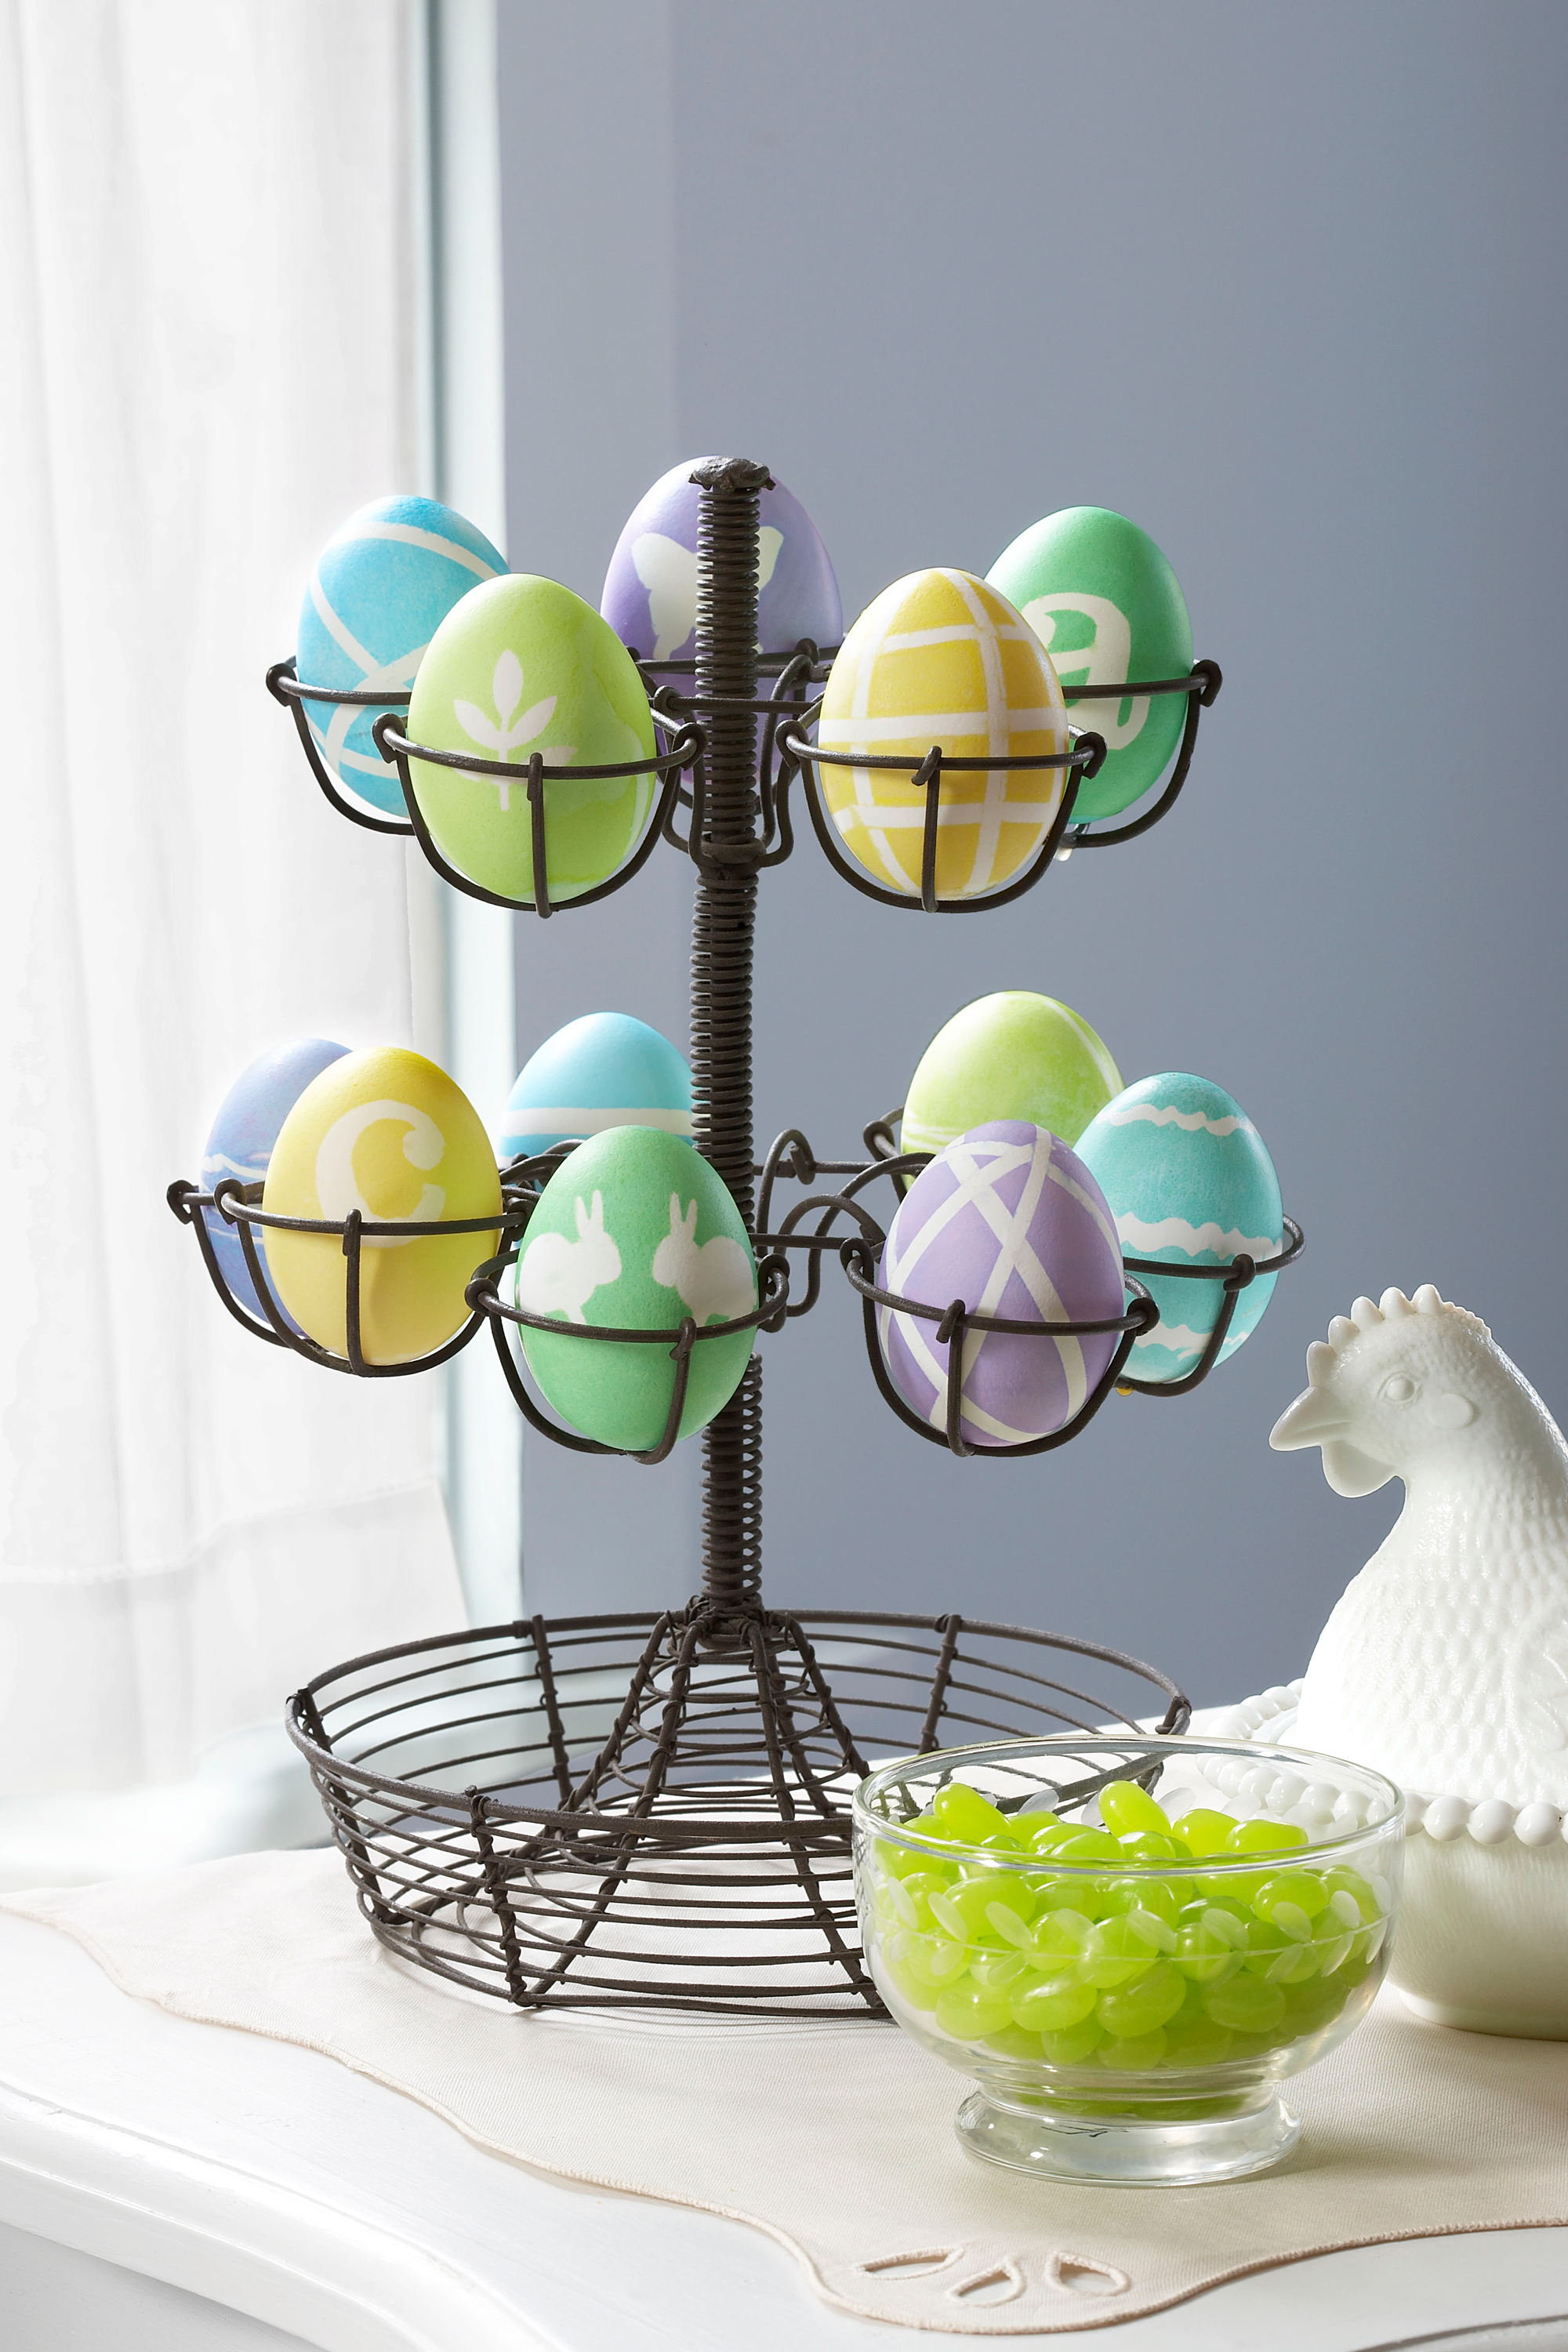 Fast and easy diy easter decorations - 60 Easy Easter Crafts Ideas For Easter Diy Decorations Gifts Country Living